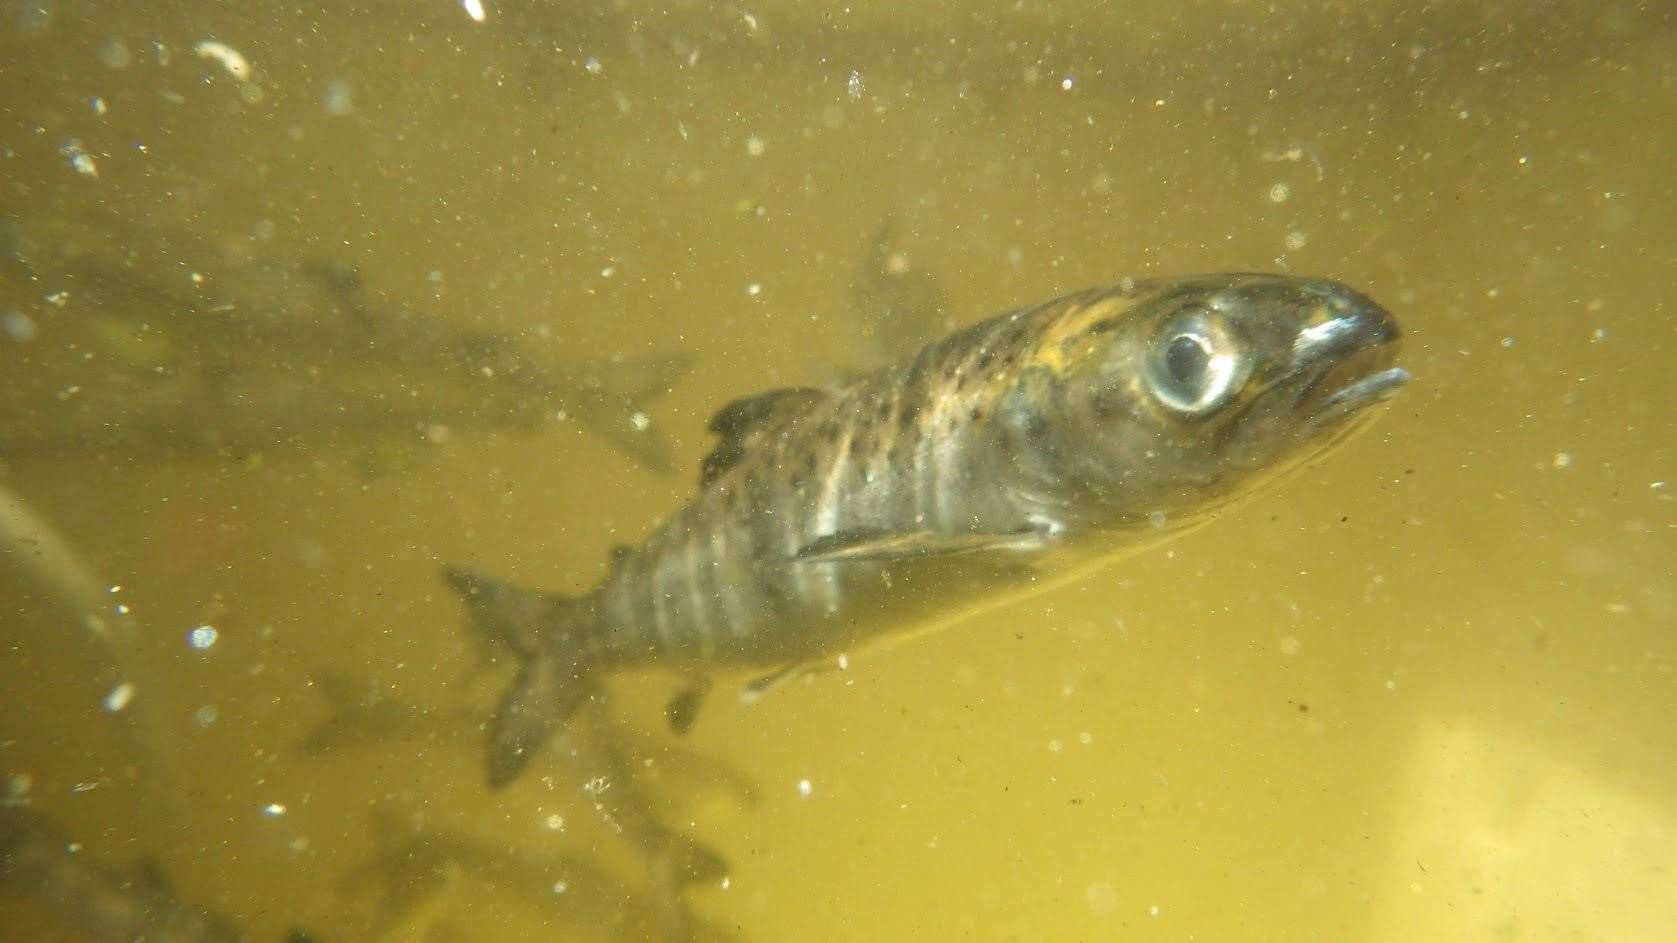 The young salmon risk missing the window to make it to their ocean feeding grounds.